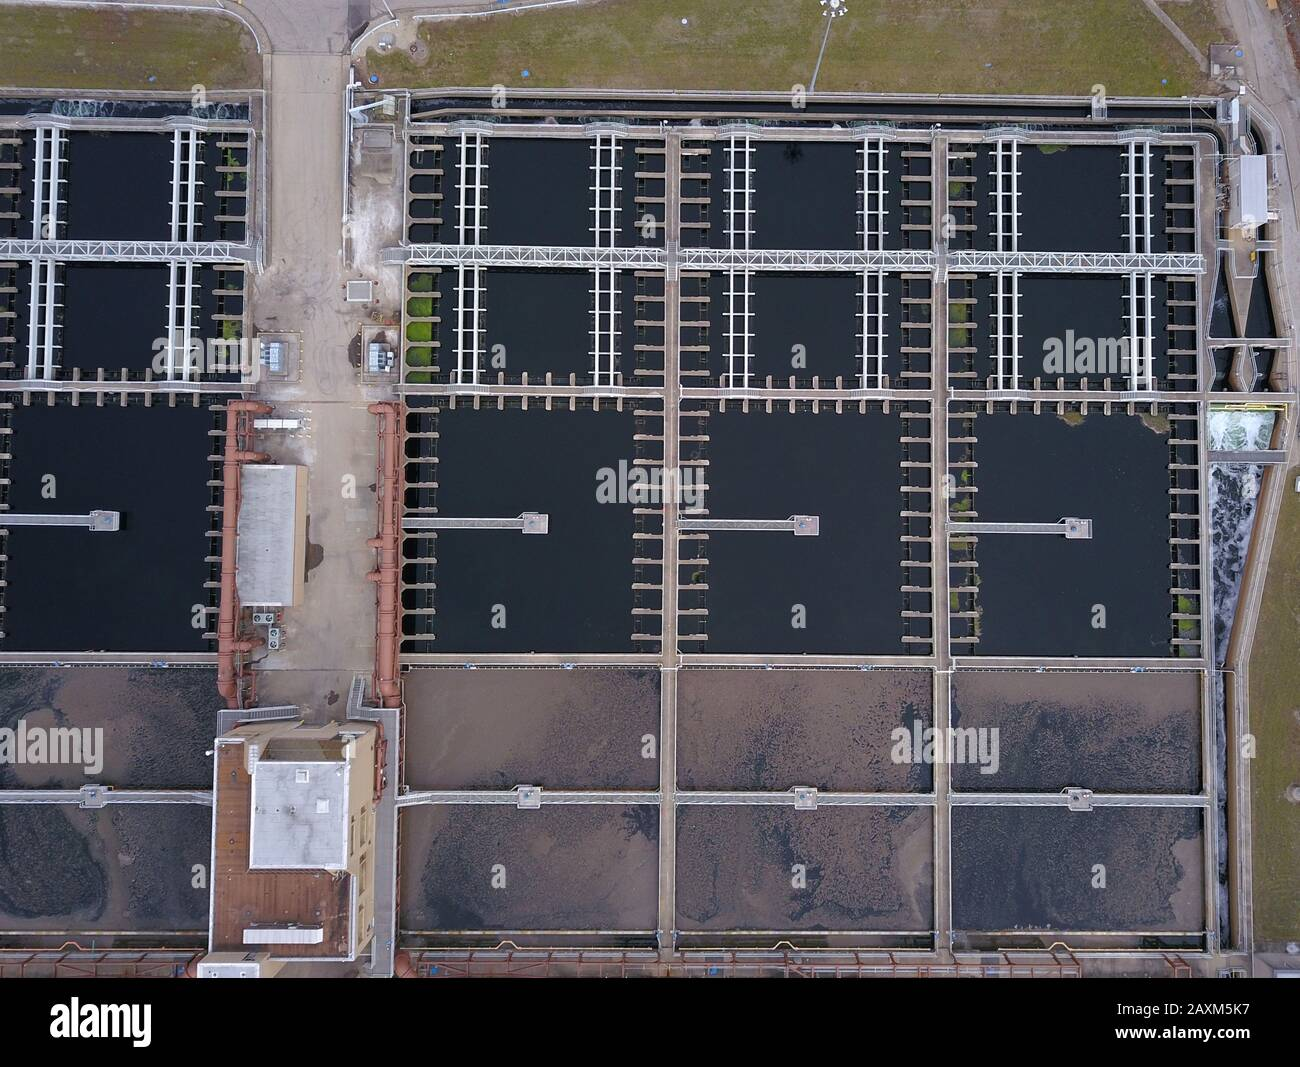 Drone aerial Sewage wastewater treatment ponds plant Cincinnati Ohio USA Stock Photo